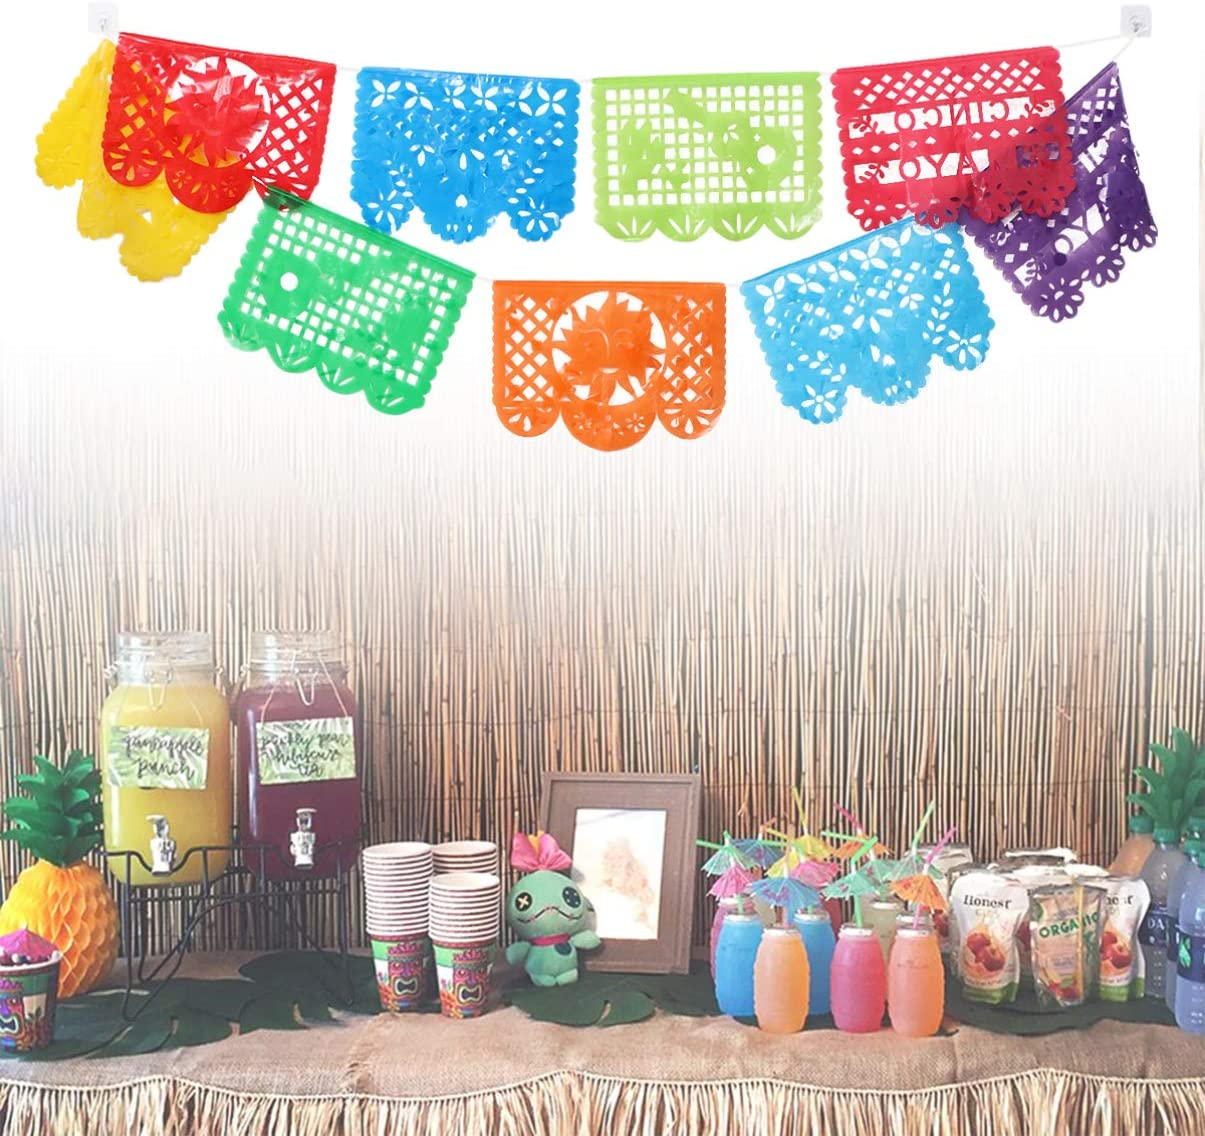 Amosfun Day of The Dead Backdrop Plastic Square Papel Picado Bunting Garland Hanging Pull Flag for Mexican Fiesta Party Supplies